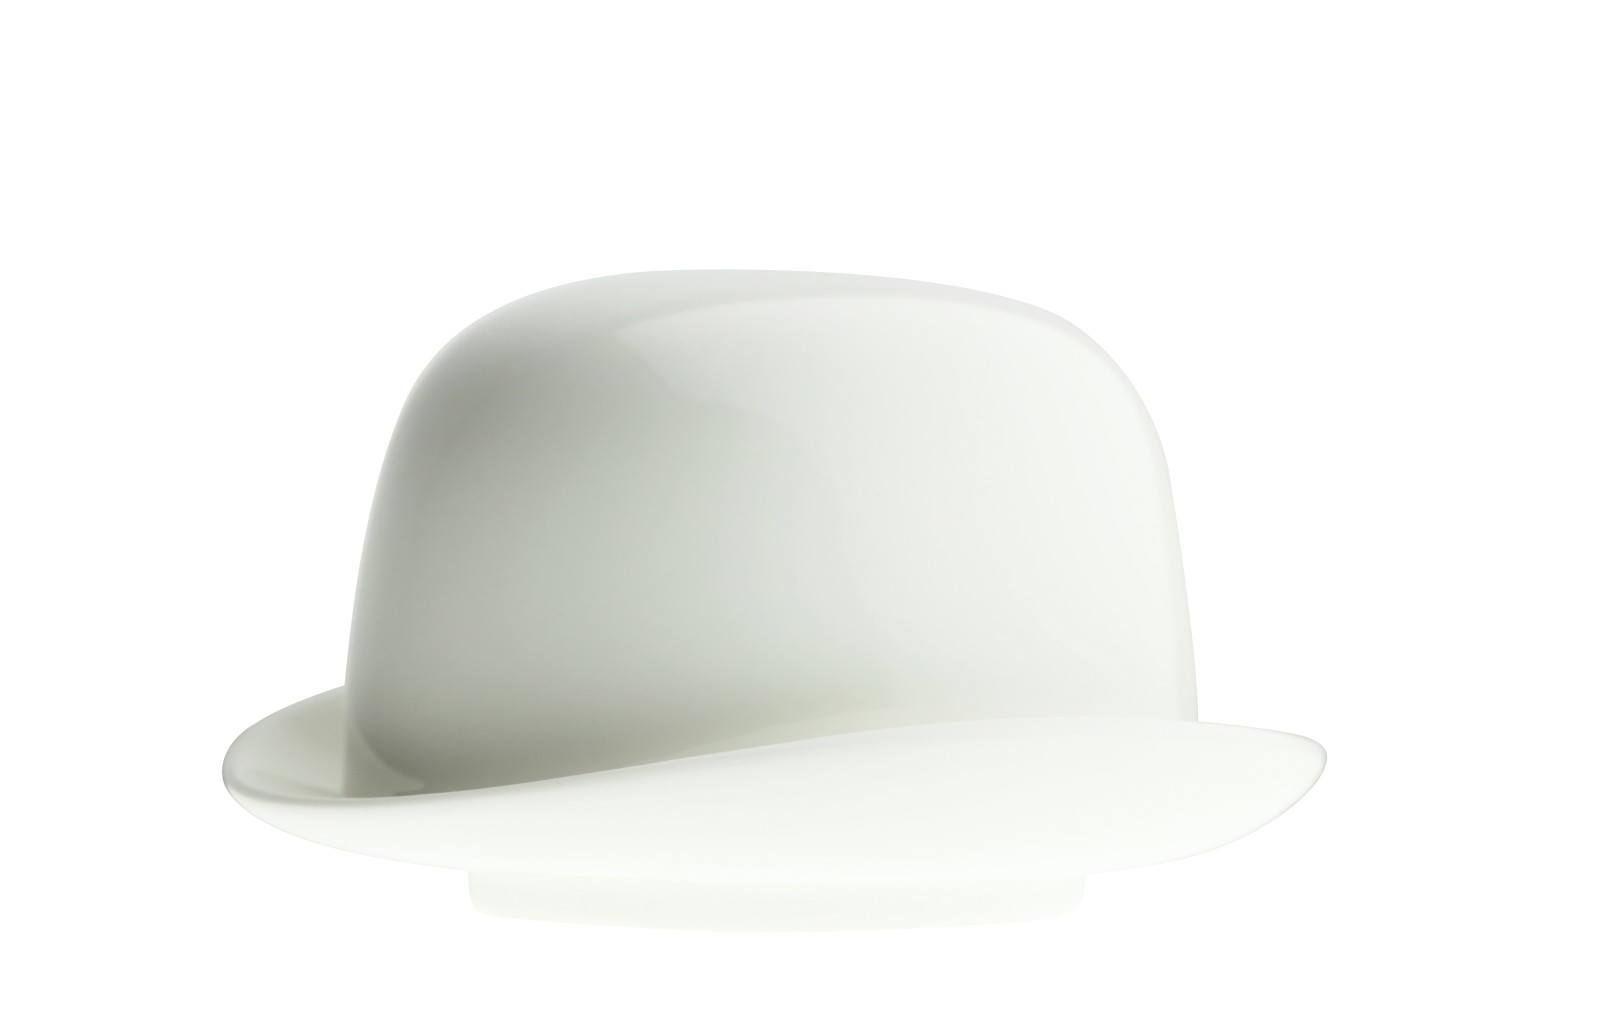 Thompson Top Hat Sugar Bowl White